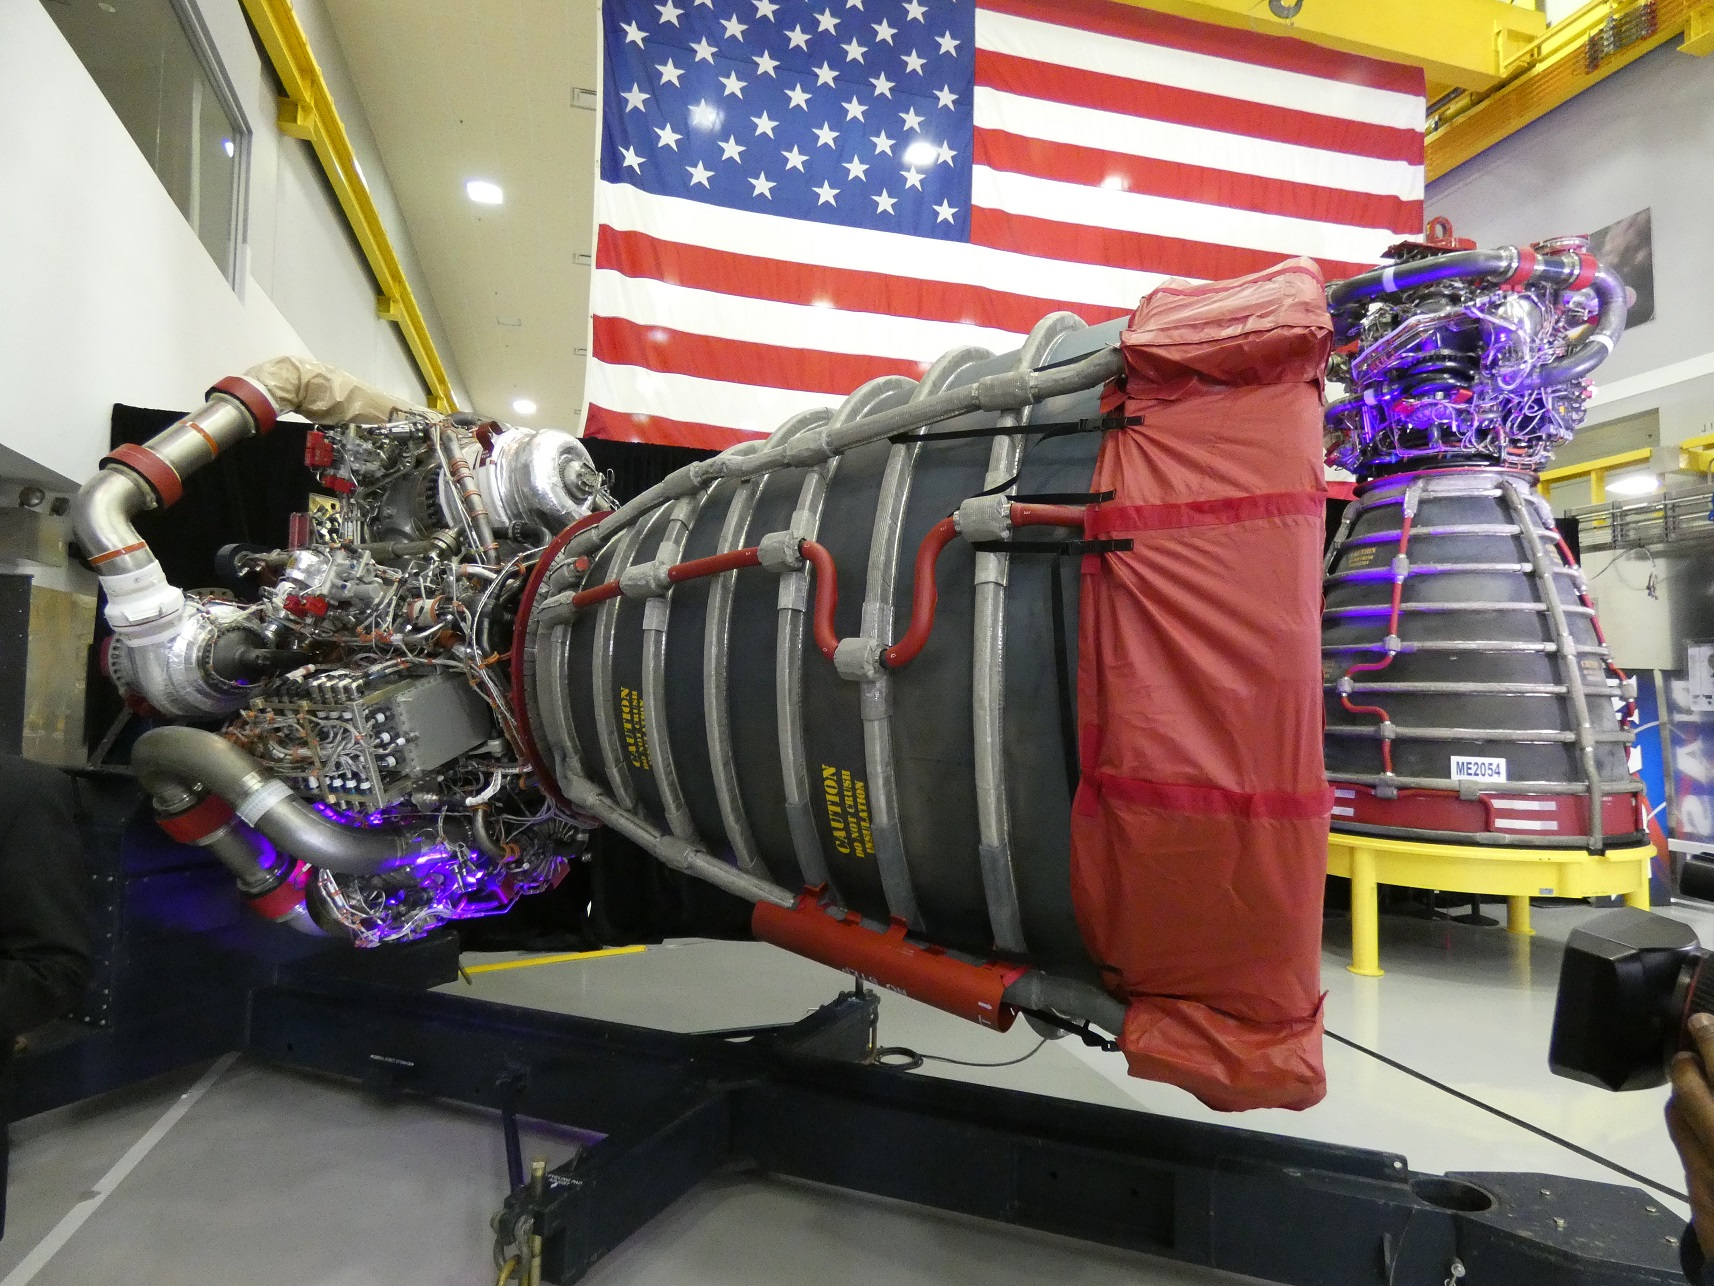 SLS continuing engine upgrades, tech development to support launcher evolution - NASASpaceflight.com